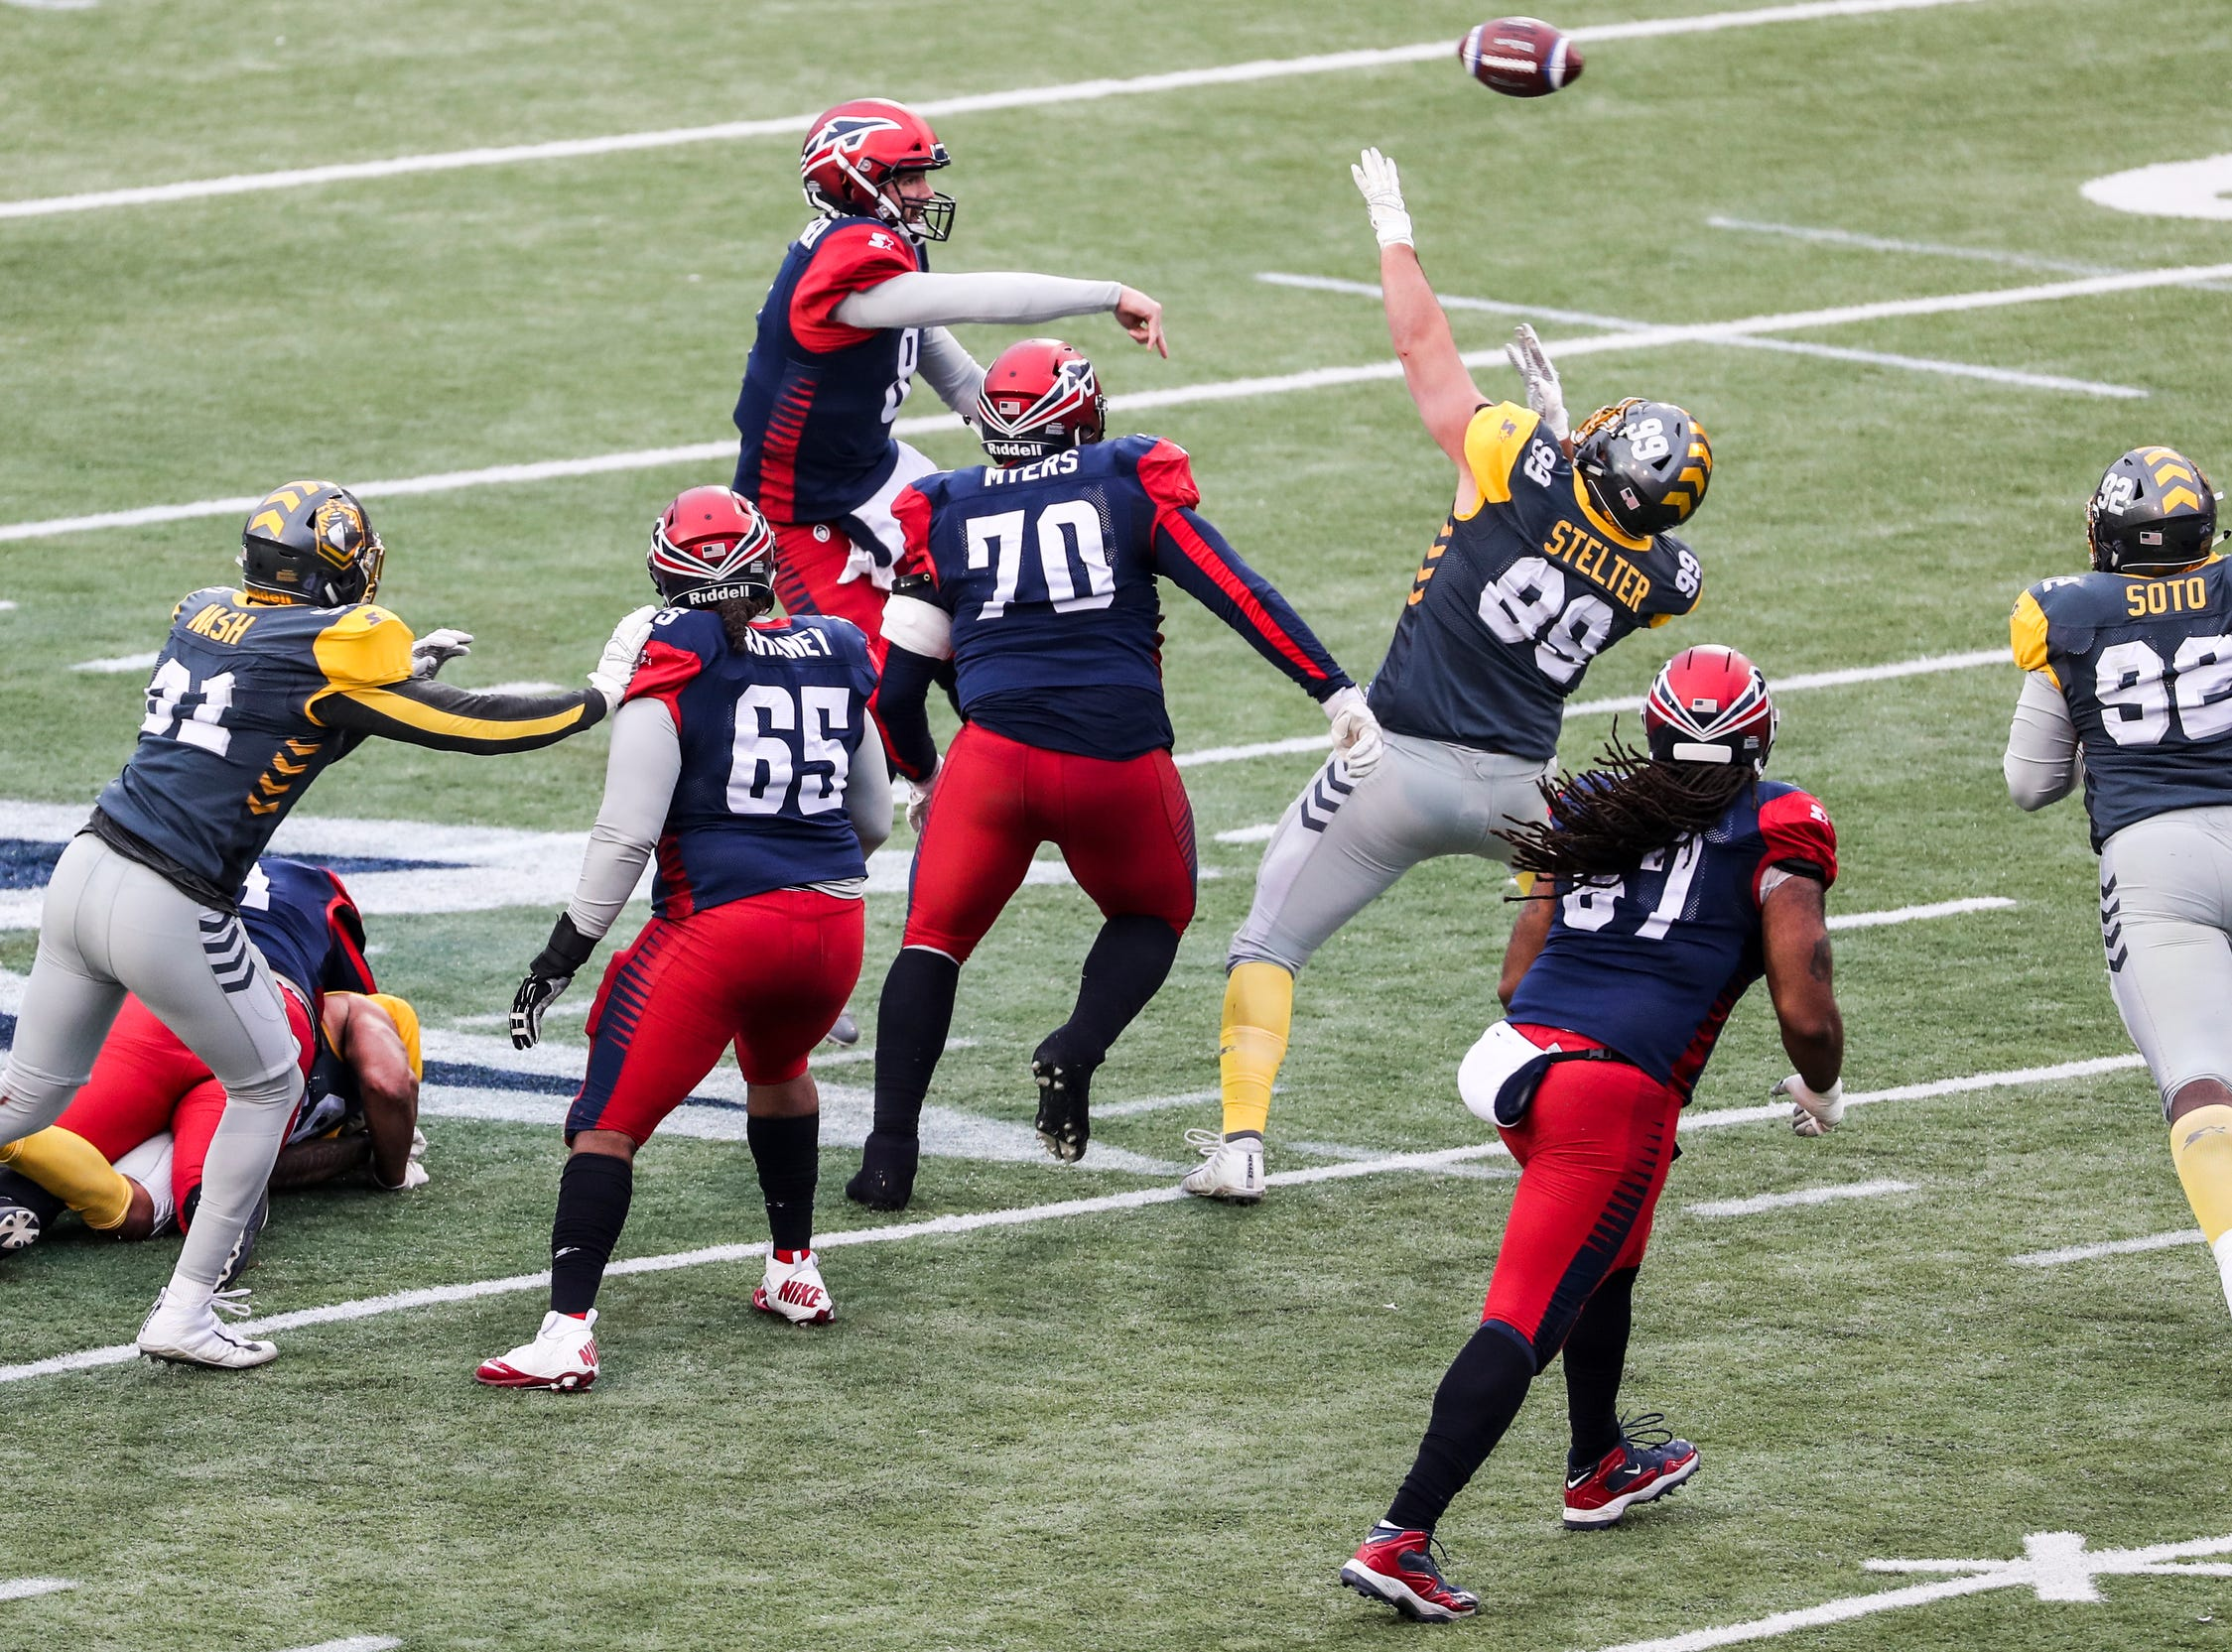 March 02, 2019 - Memphis Express' Zach Mettenberger attempts a pass during Saturday's game against the San Diego Fleet.